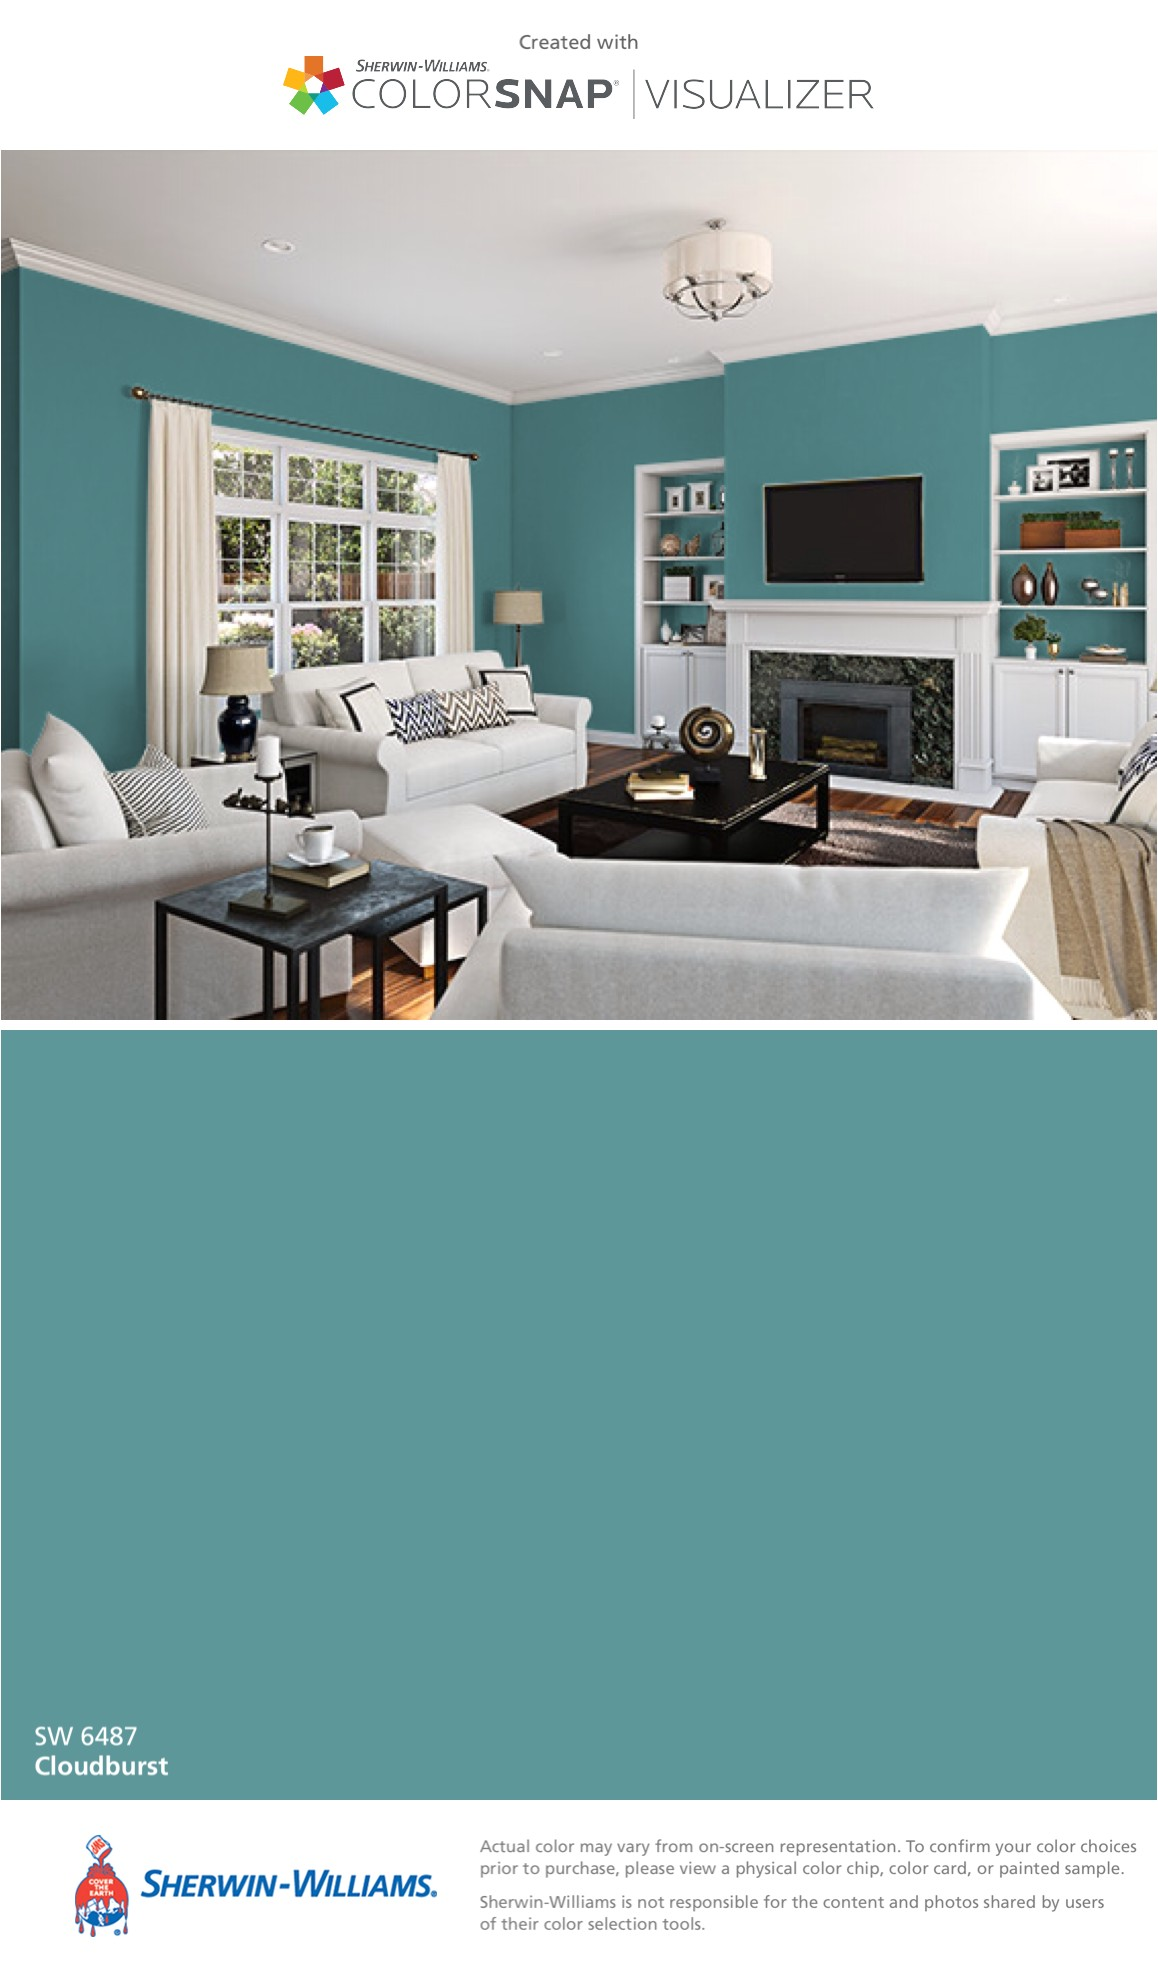 i found this color with colorsnapa visualizer for iphone by sherwin williams cloudburst sw 6487